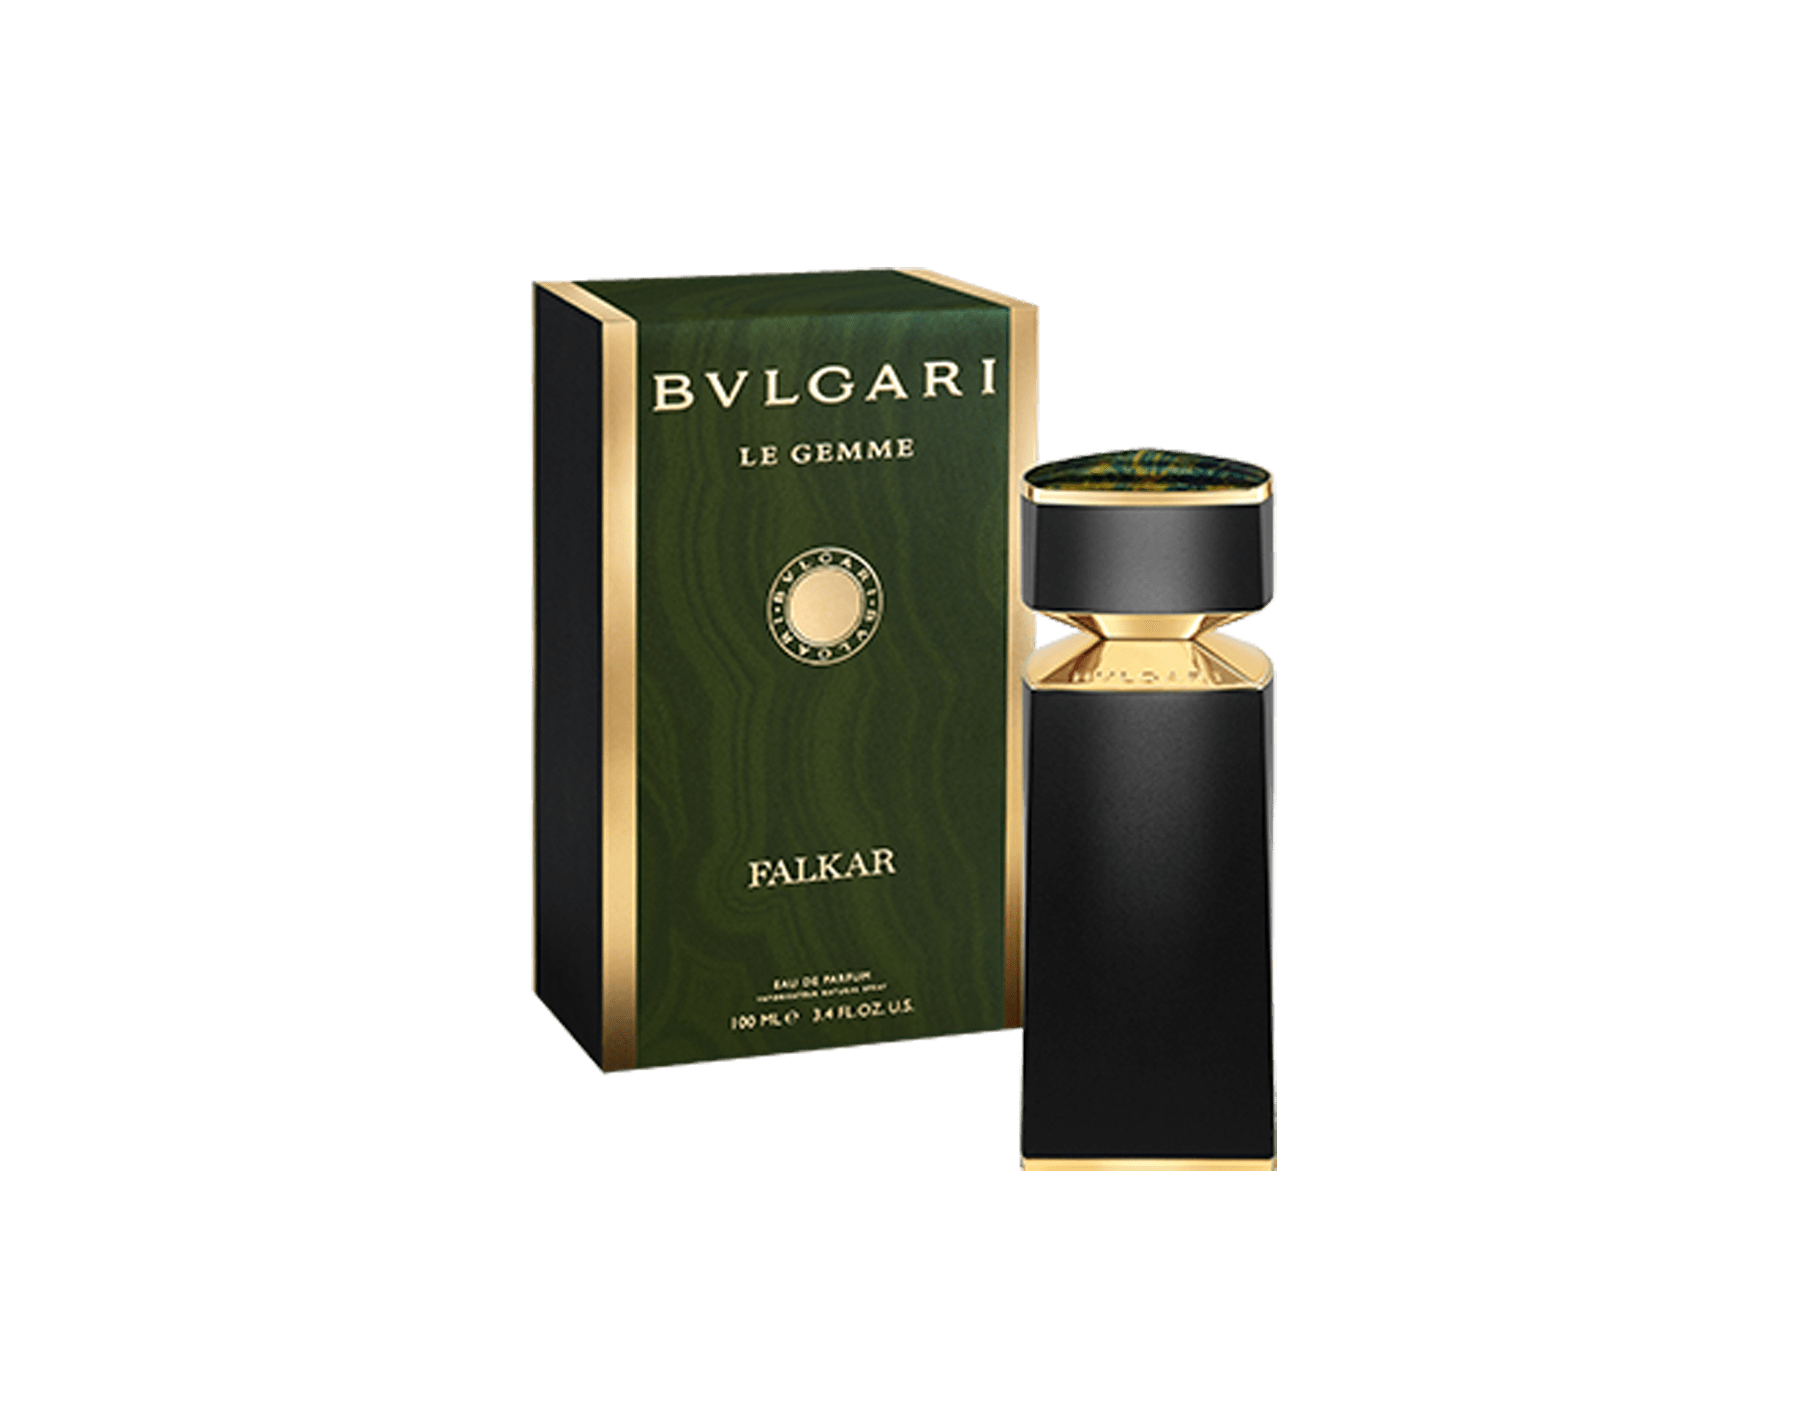 A deep and opulent black musk bringing to light warm notes of tanned leather, enveloped with mystic agarwood 40163 image 2